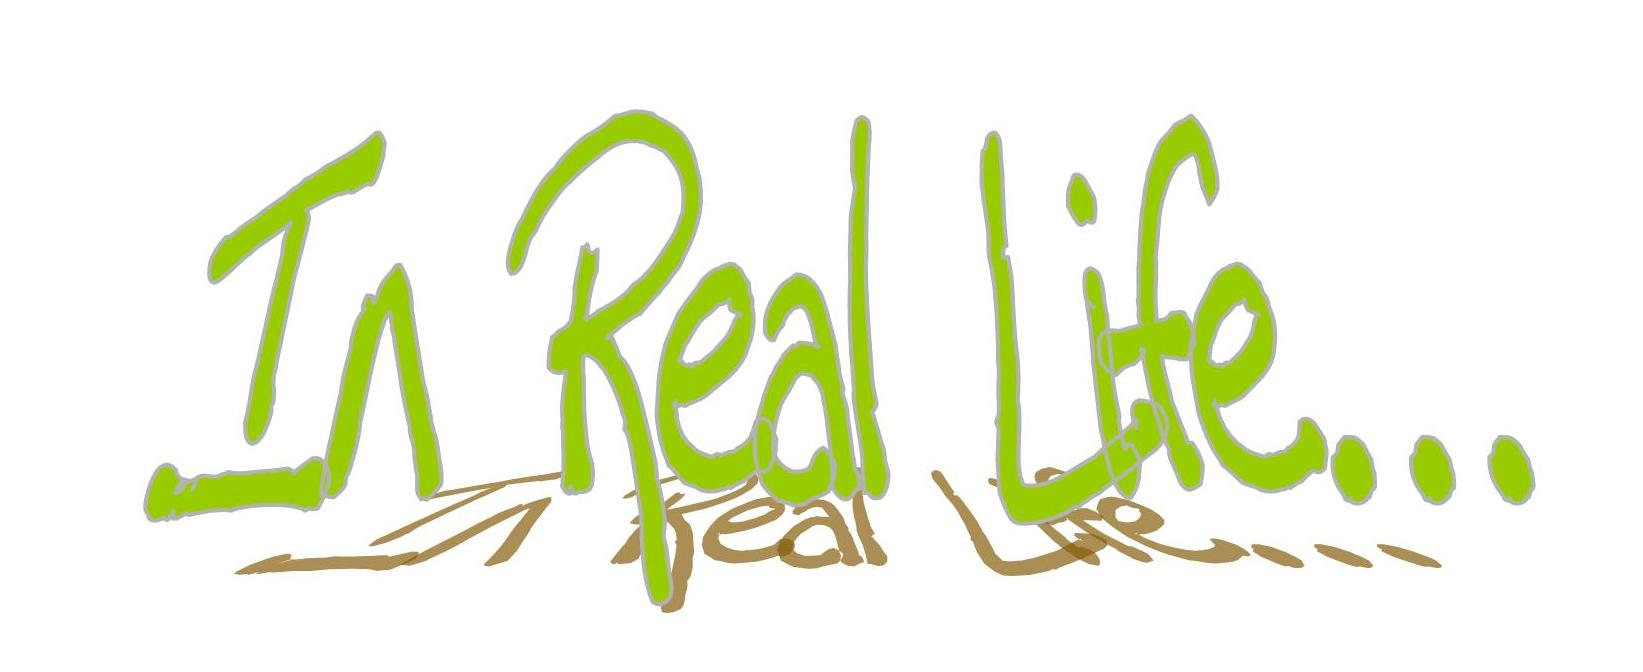 real-life-words